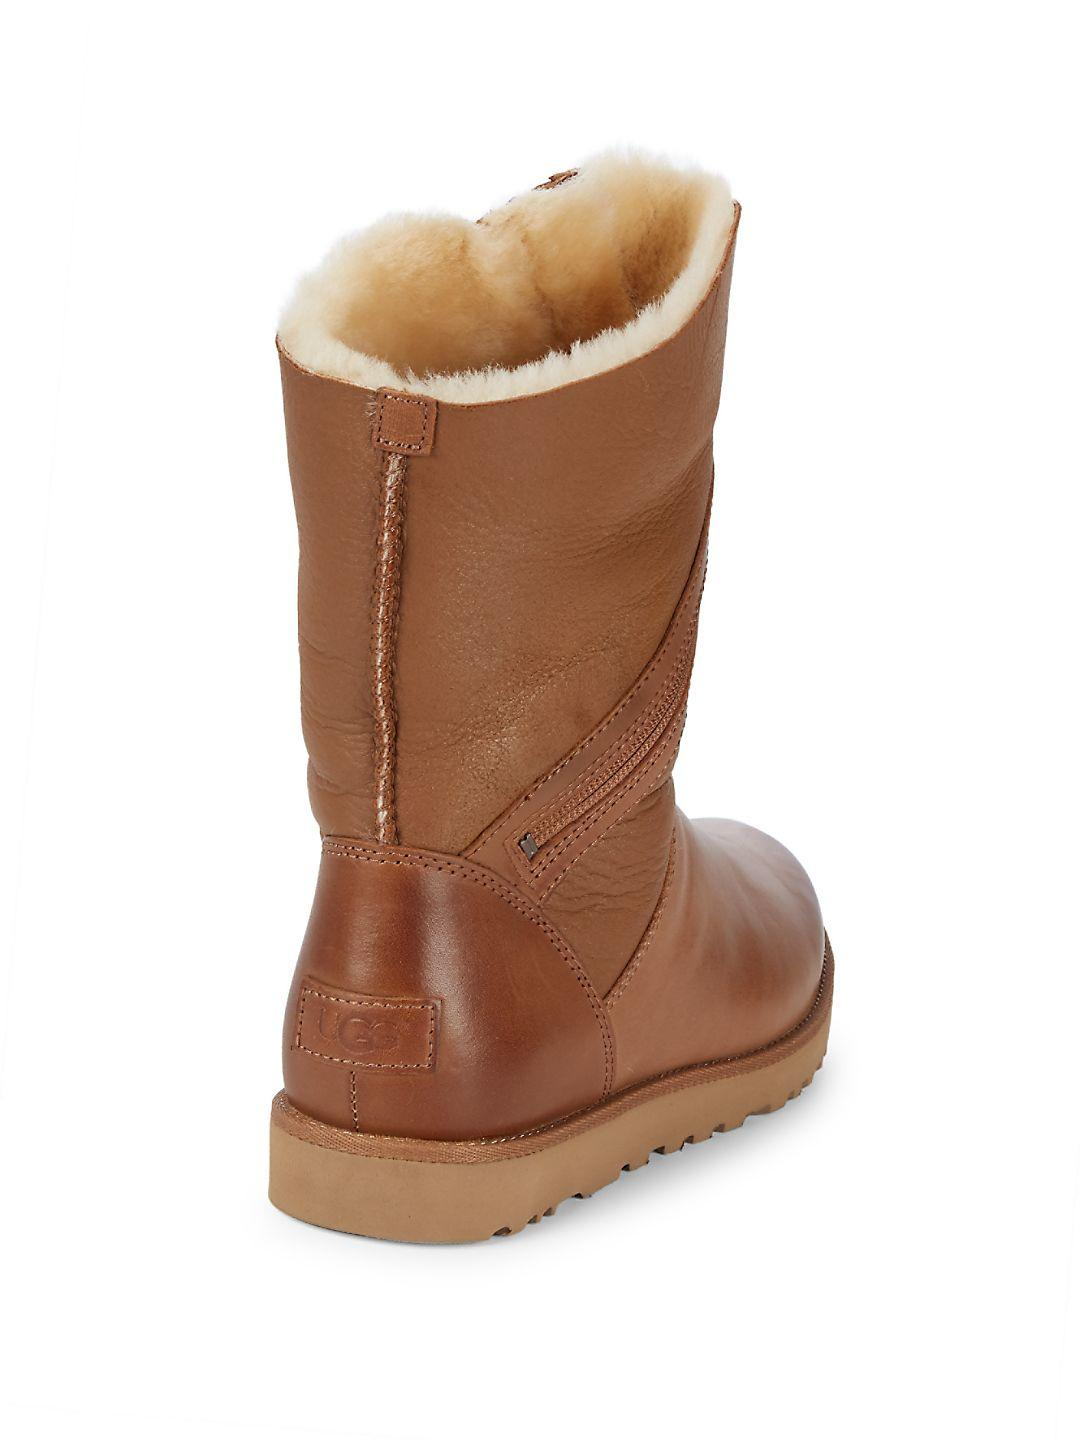 UGG Alba Leather Boots in Chestnut (Brown)